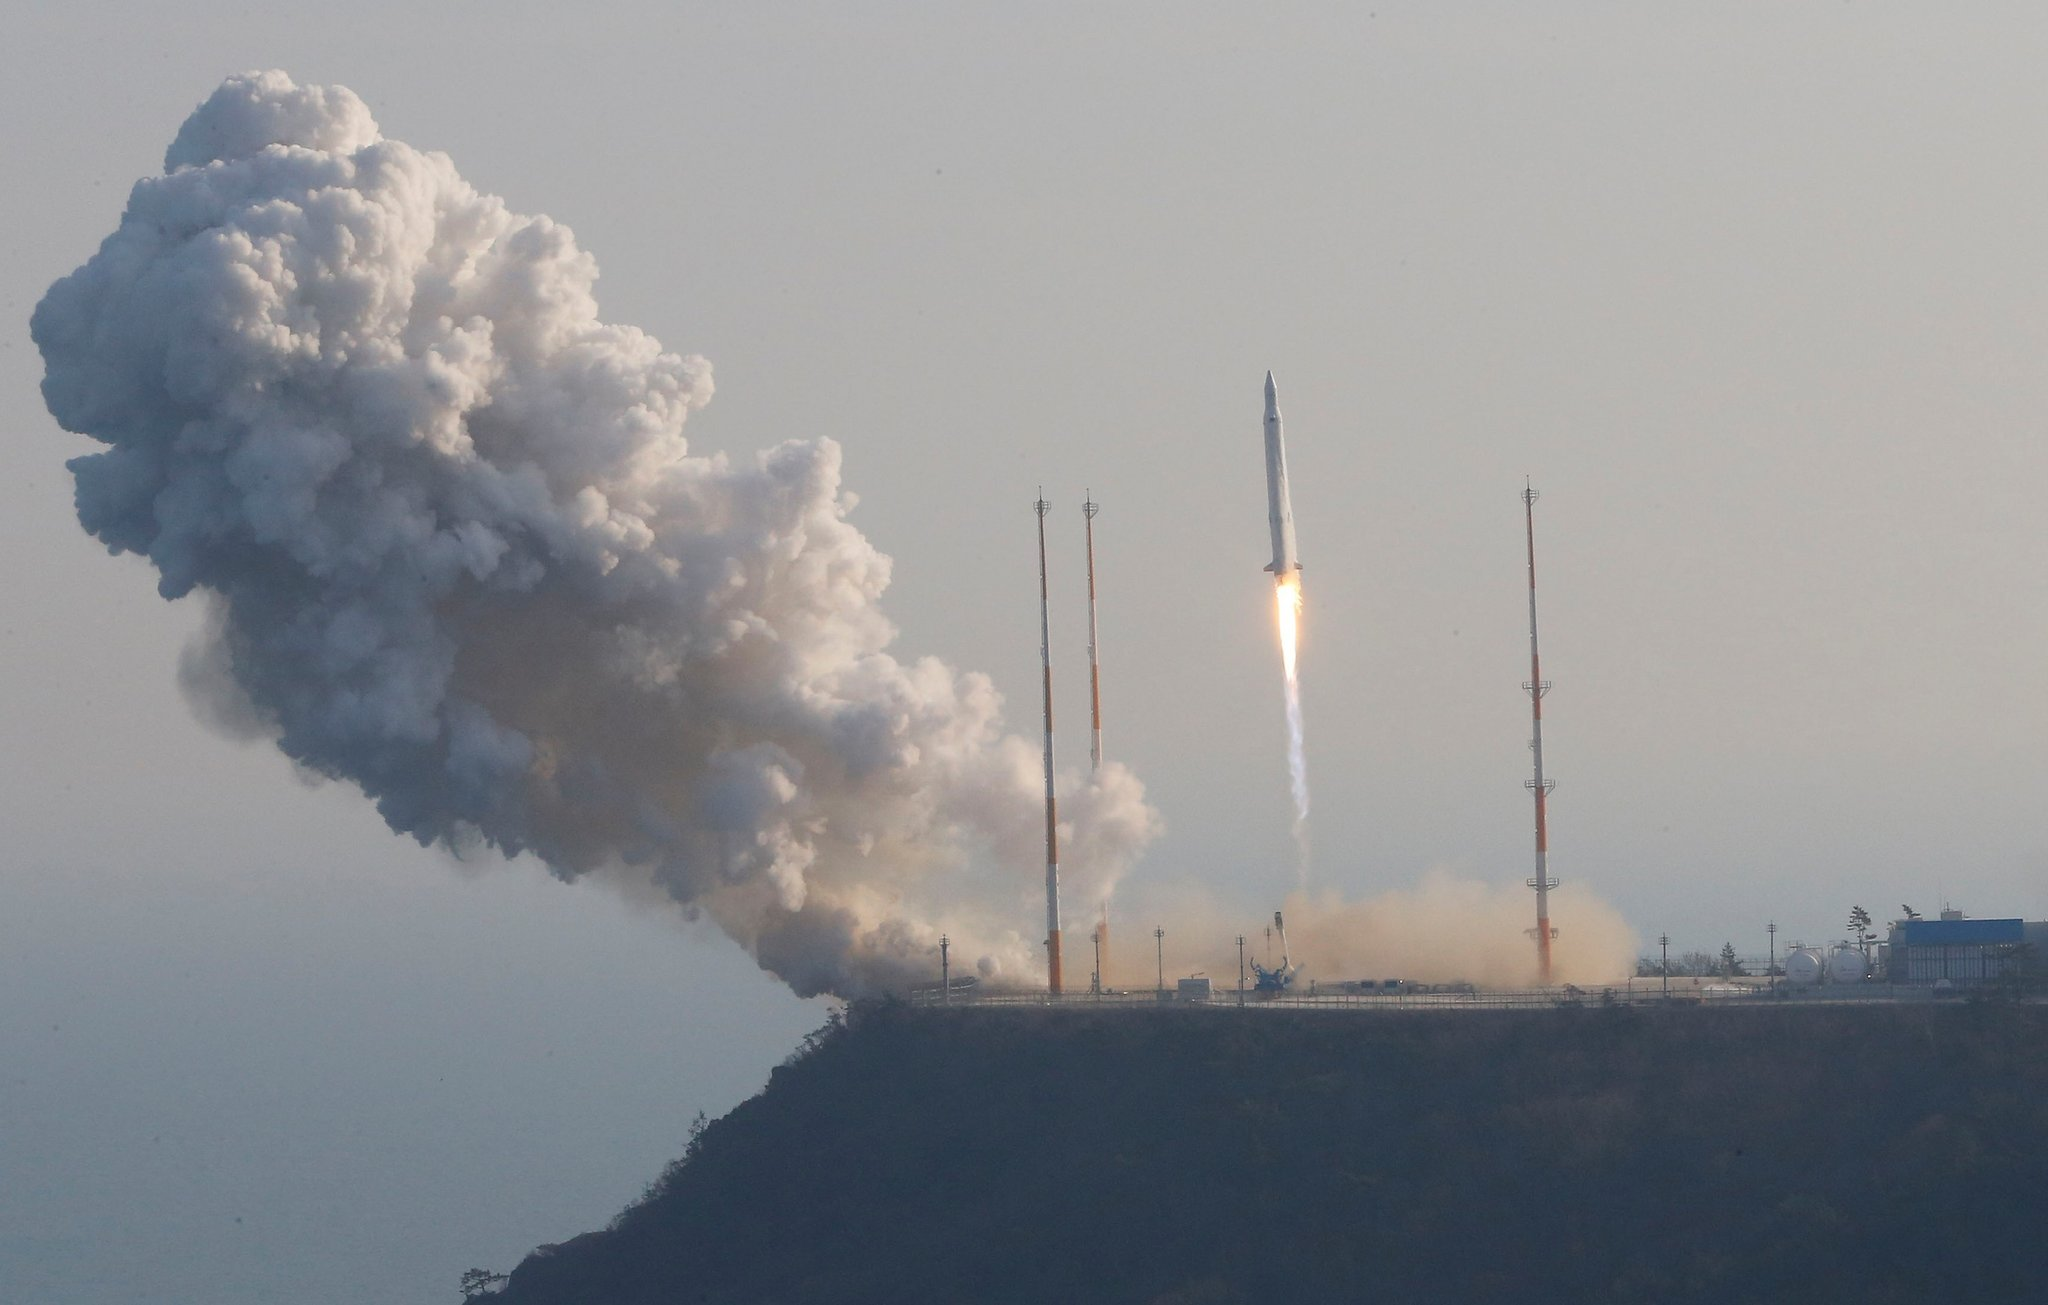 The Korea Space Launch Vehicle-1 successfully takes off from the Naro Space Center in Goheung, South Korea in 2013.